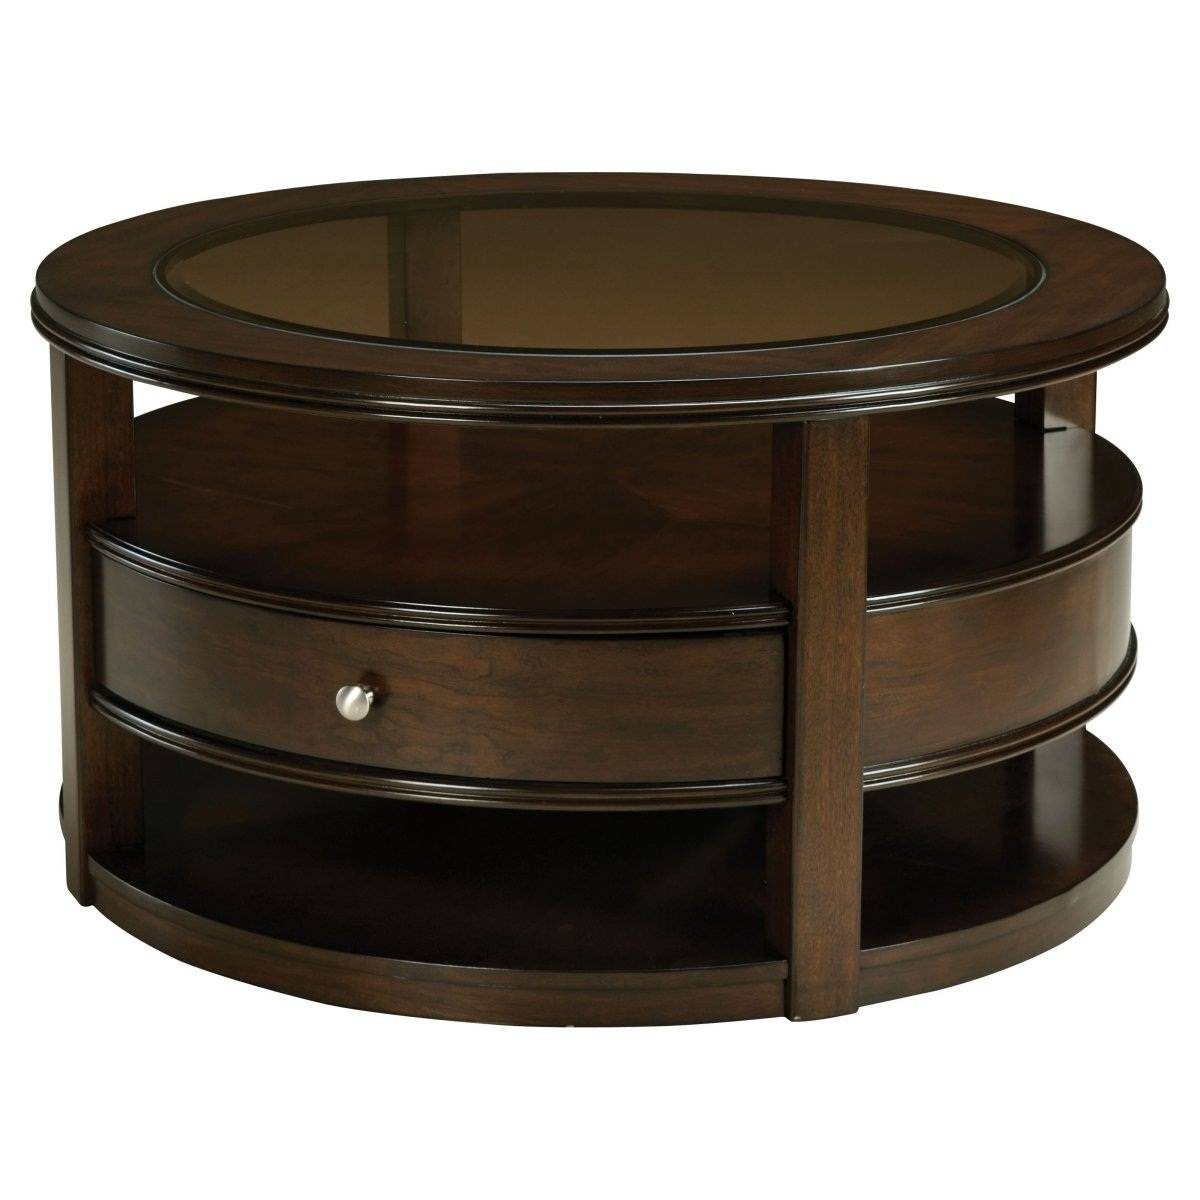 Round Dark Wood Coffee Table Starrkingschool - Jericho Mafjar Project inside Round Coffee Tables With Drawer (Image 27 of 30)